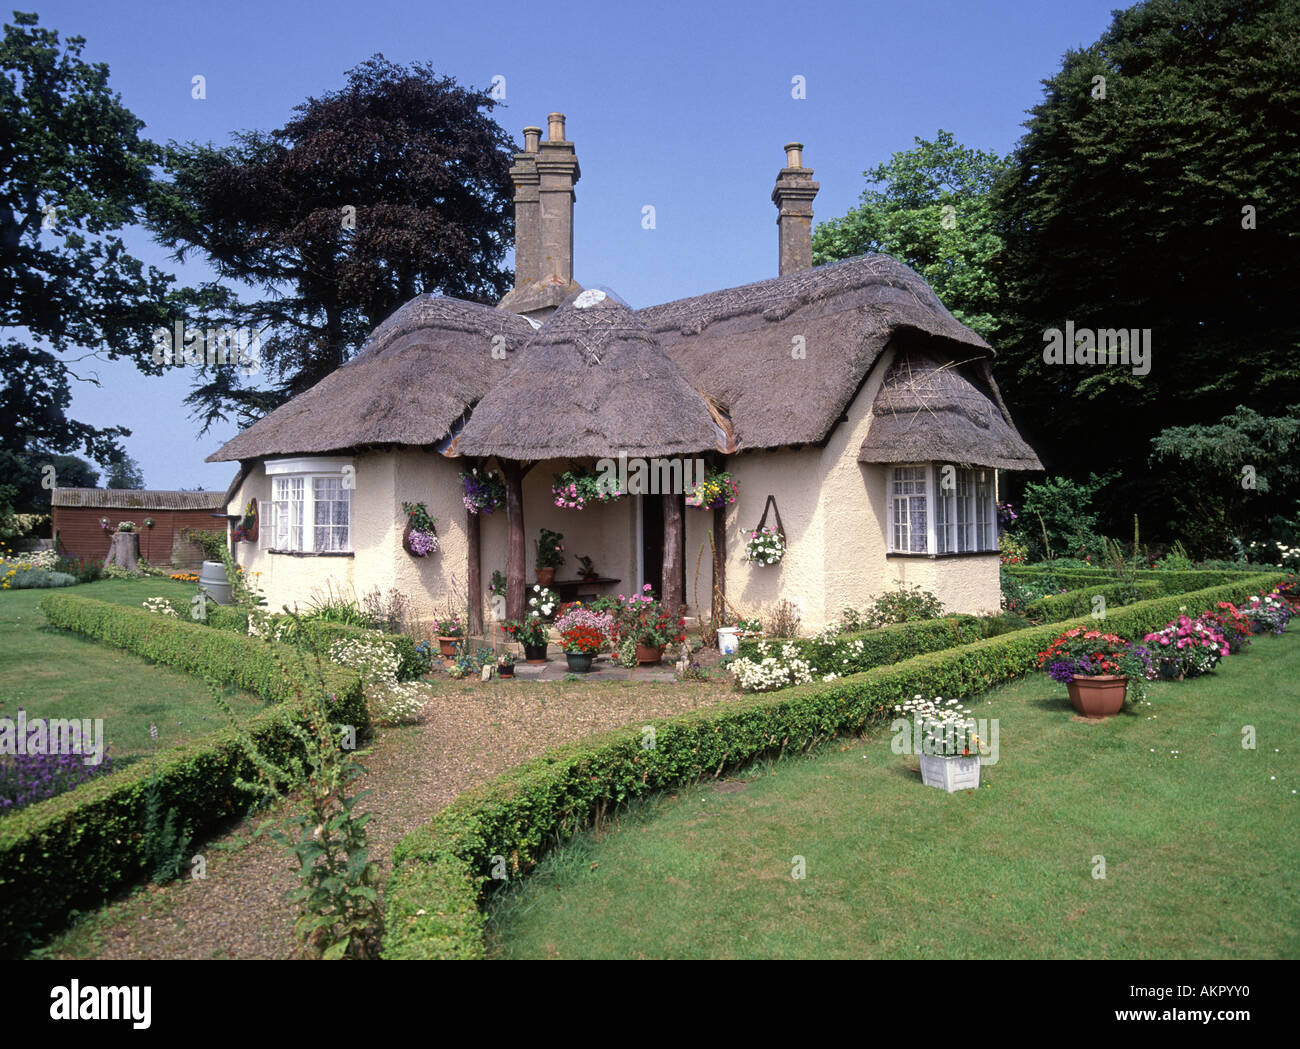 Somerleyton village thatched roofed cottage and garden - Stock Image